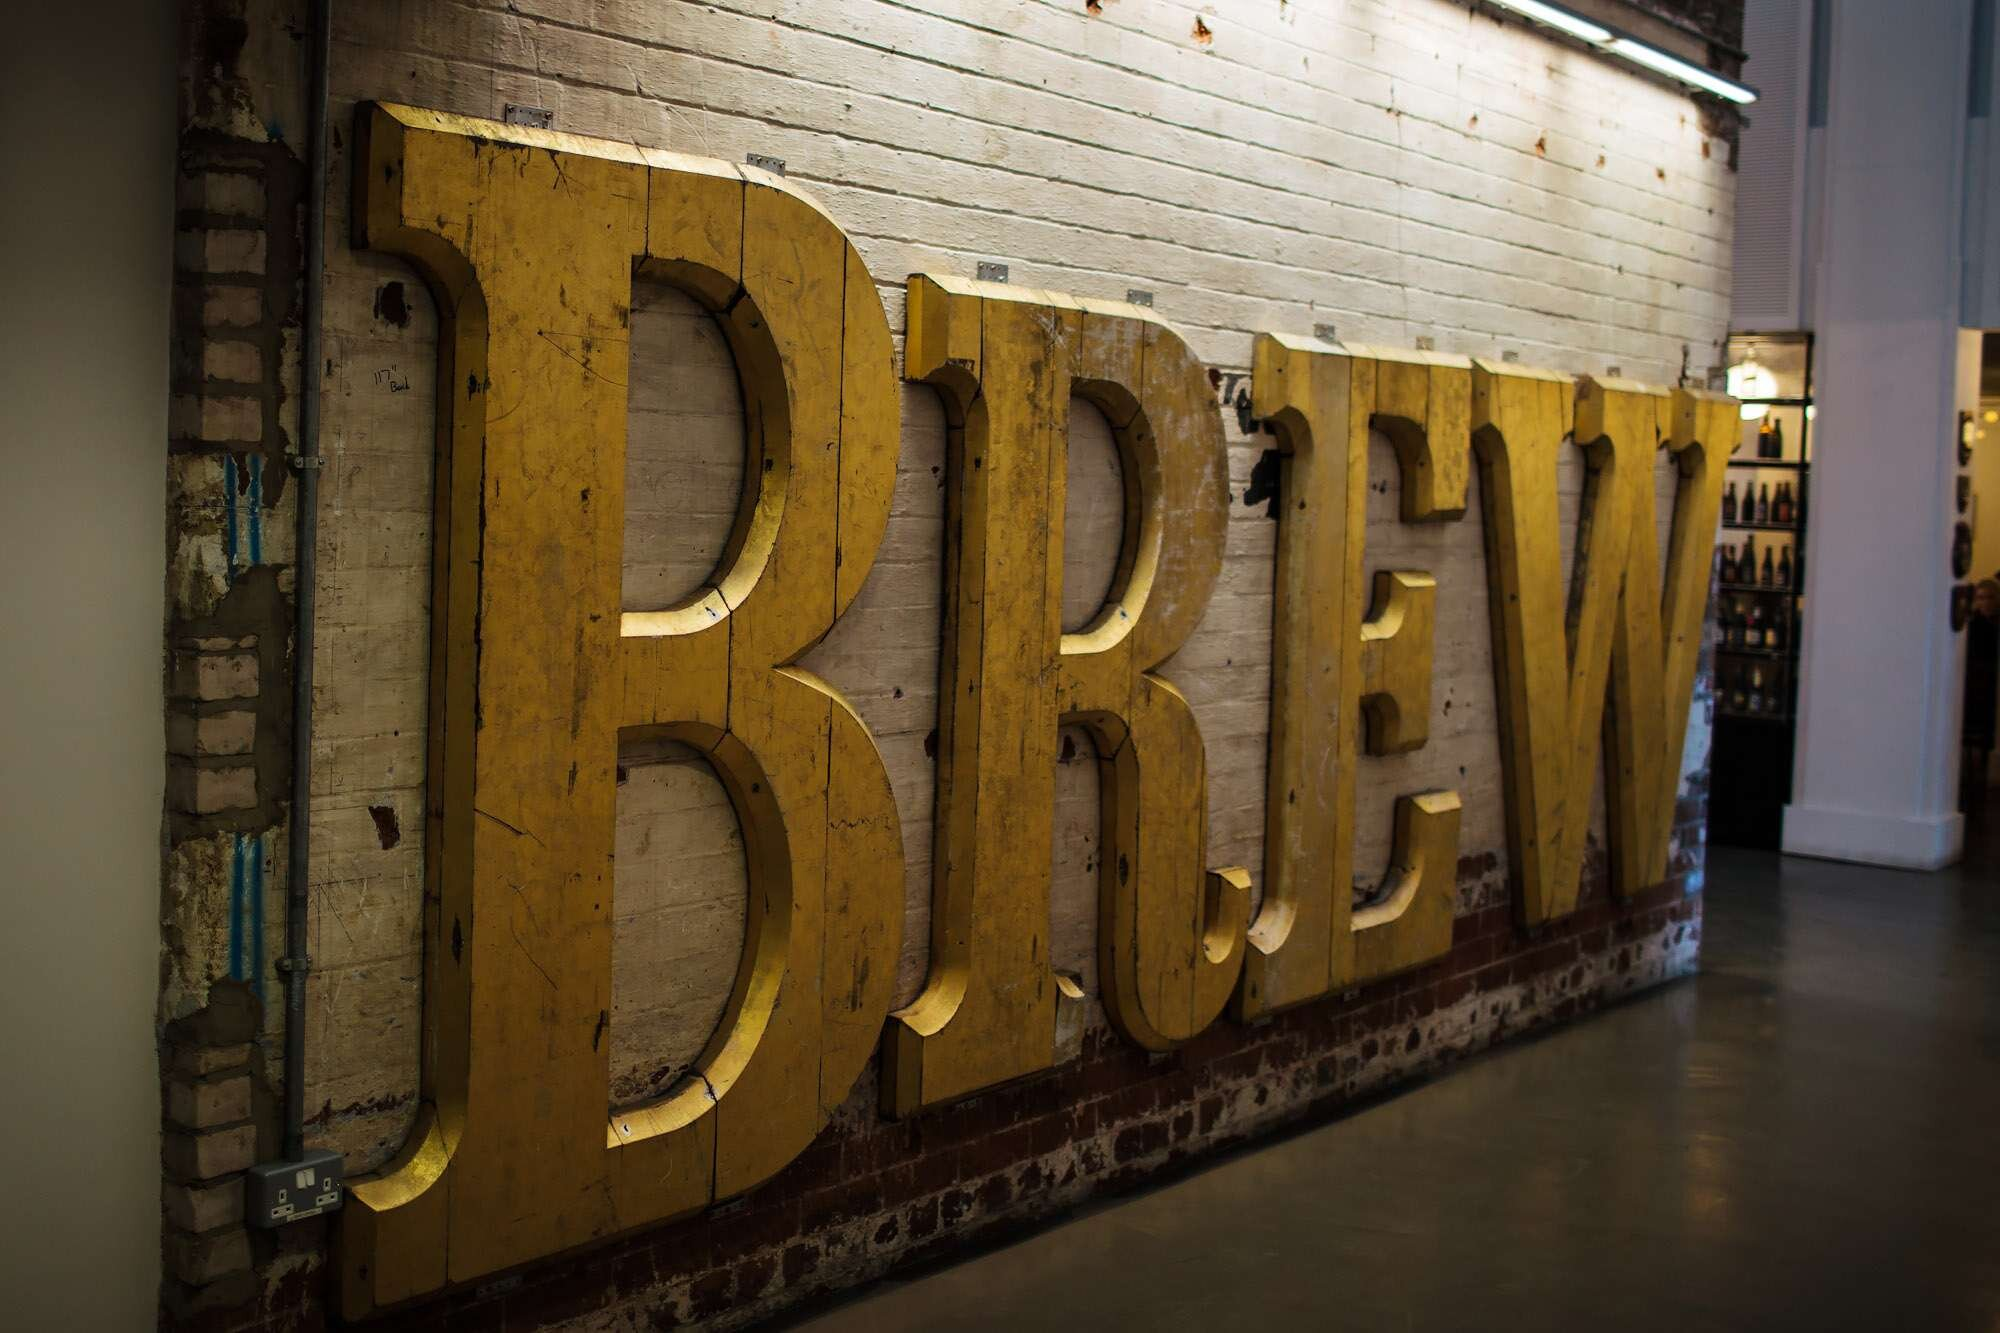 Brew sign at The Tetley Leeds wedding